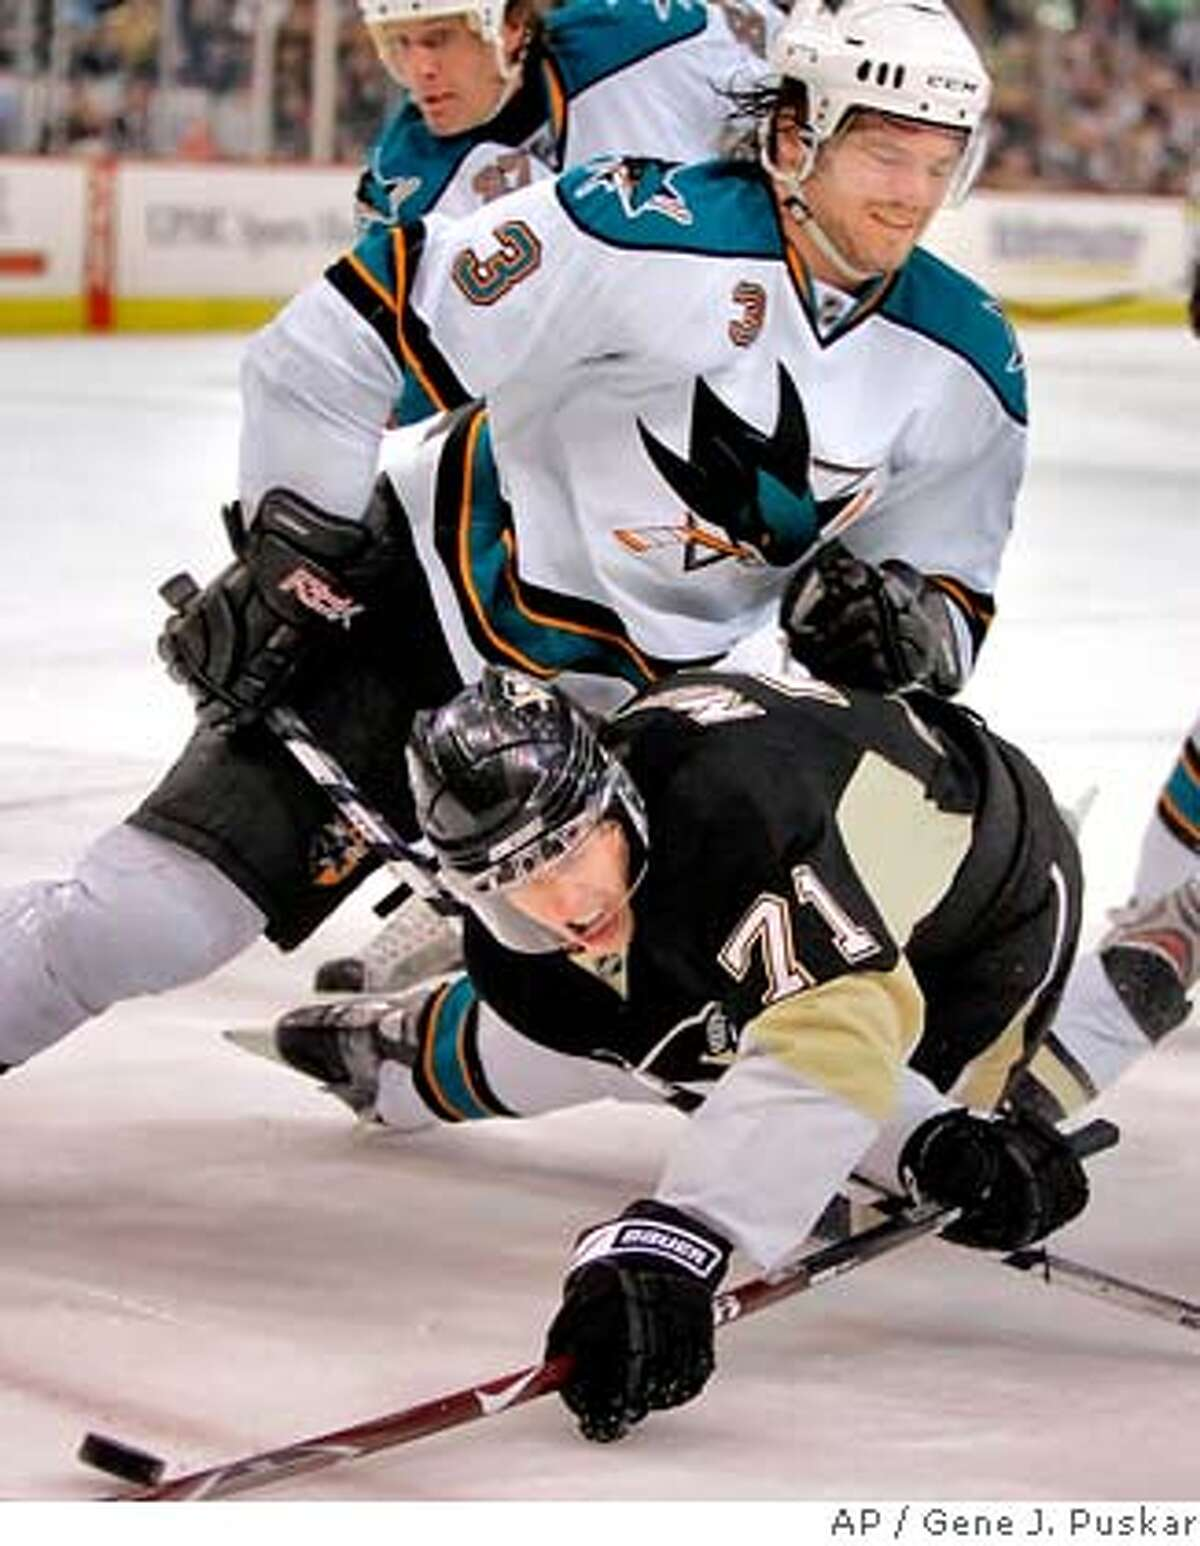 San Jose Sharks' Douglas Murray (3), of Sweden, gets tangled with Pittsburgh Penguins' Evgeni Malkin (71), of Russia, in the first period of NHL hockey action in Pittsburgh, Sunday, Feb. 24, 2008 in Pittsburgh.